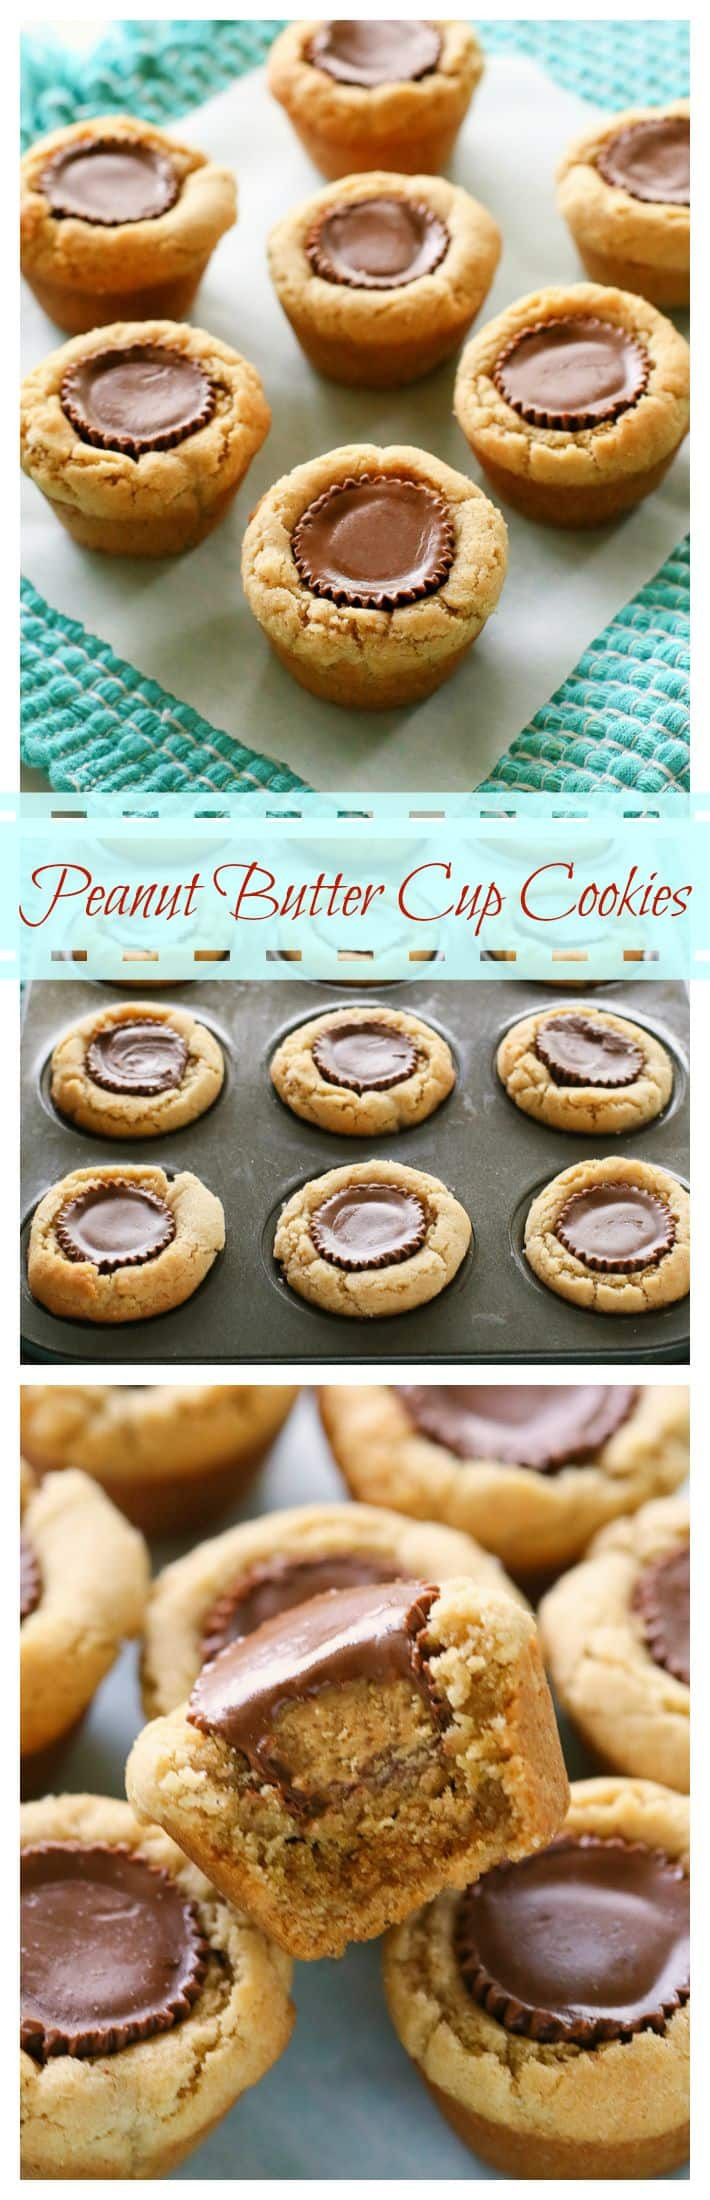 Peanut Butter Cup Cookies  Peanut Butter Cup Cookies The Girl Who Ate Everything